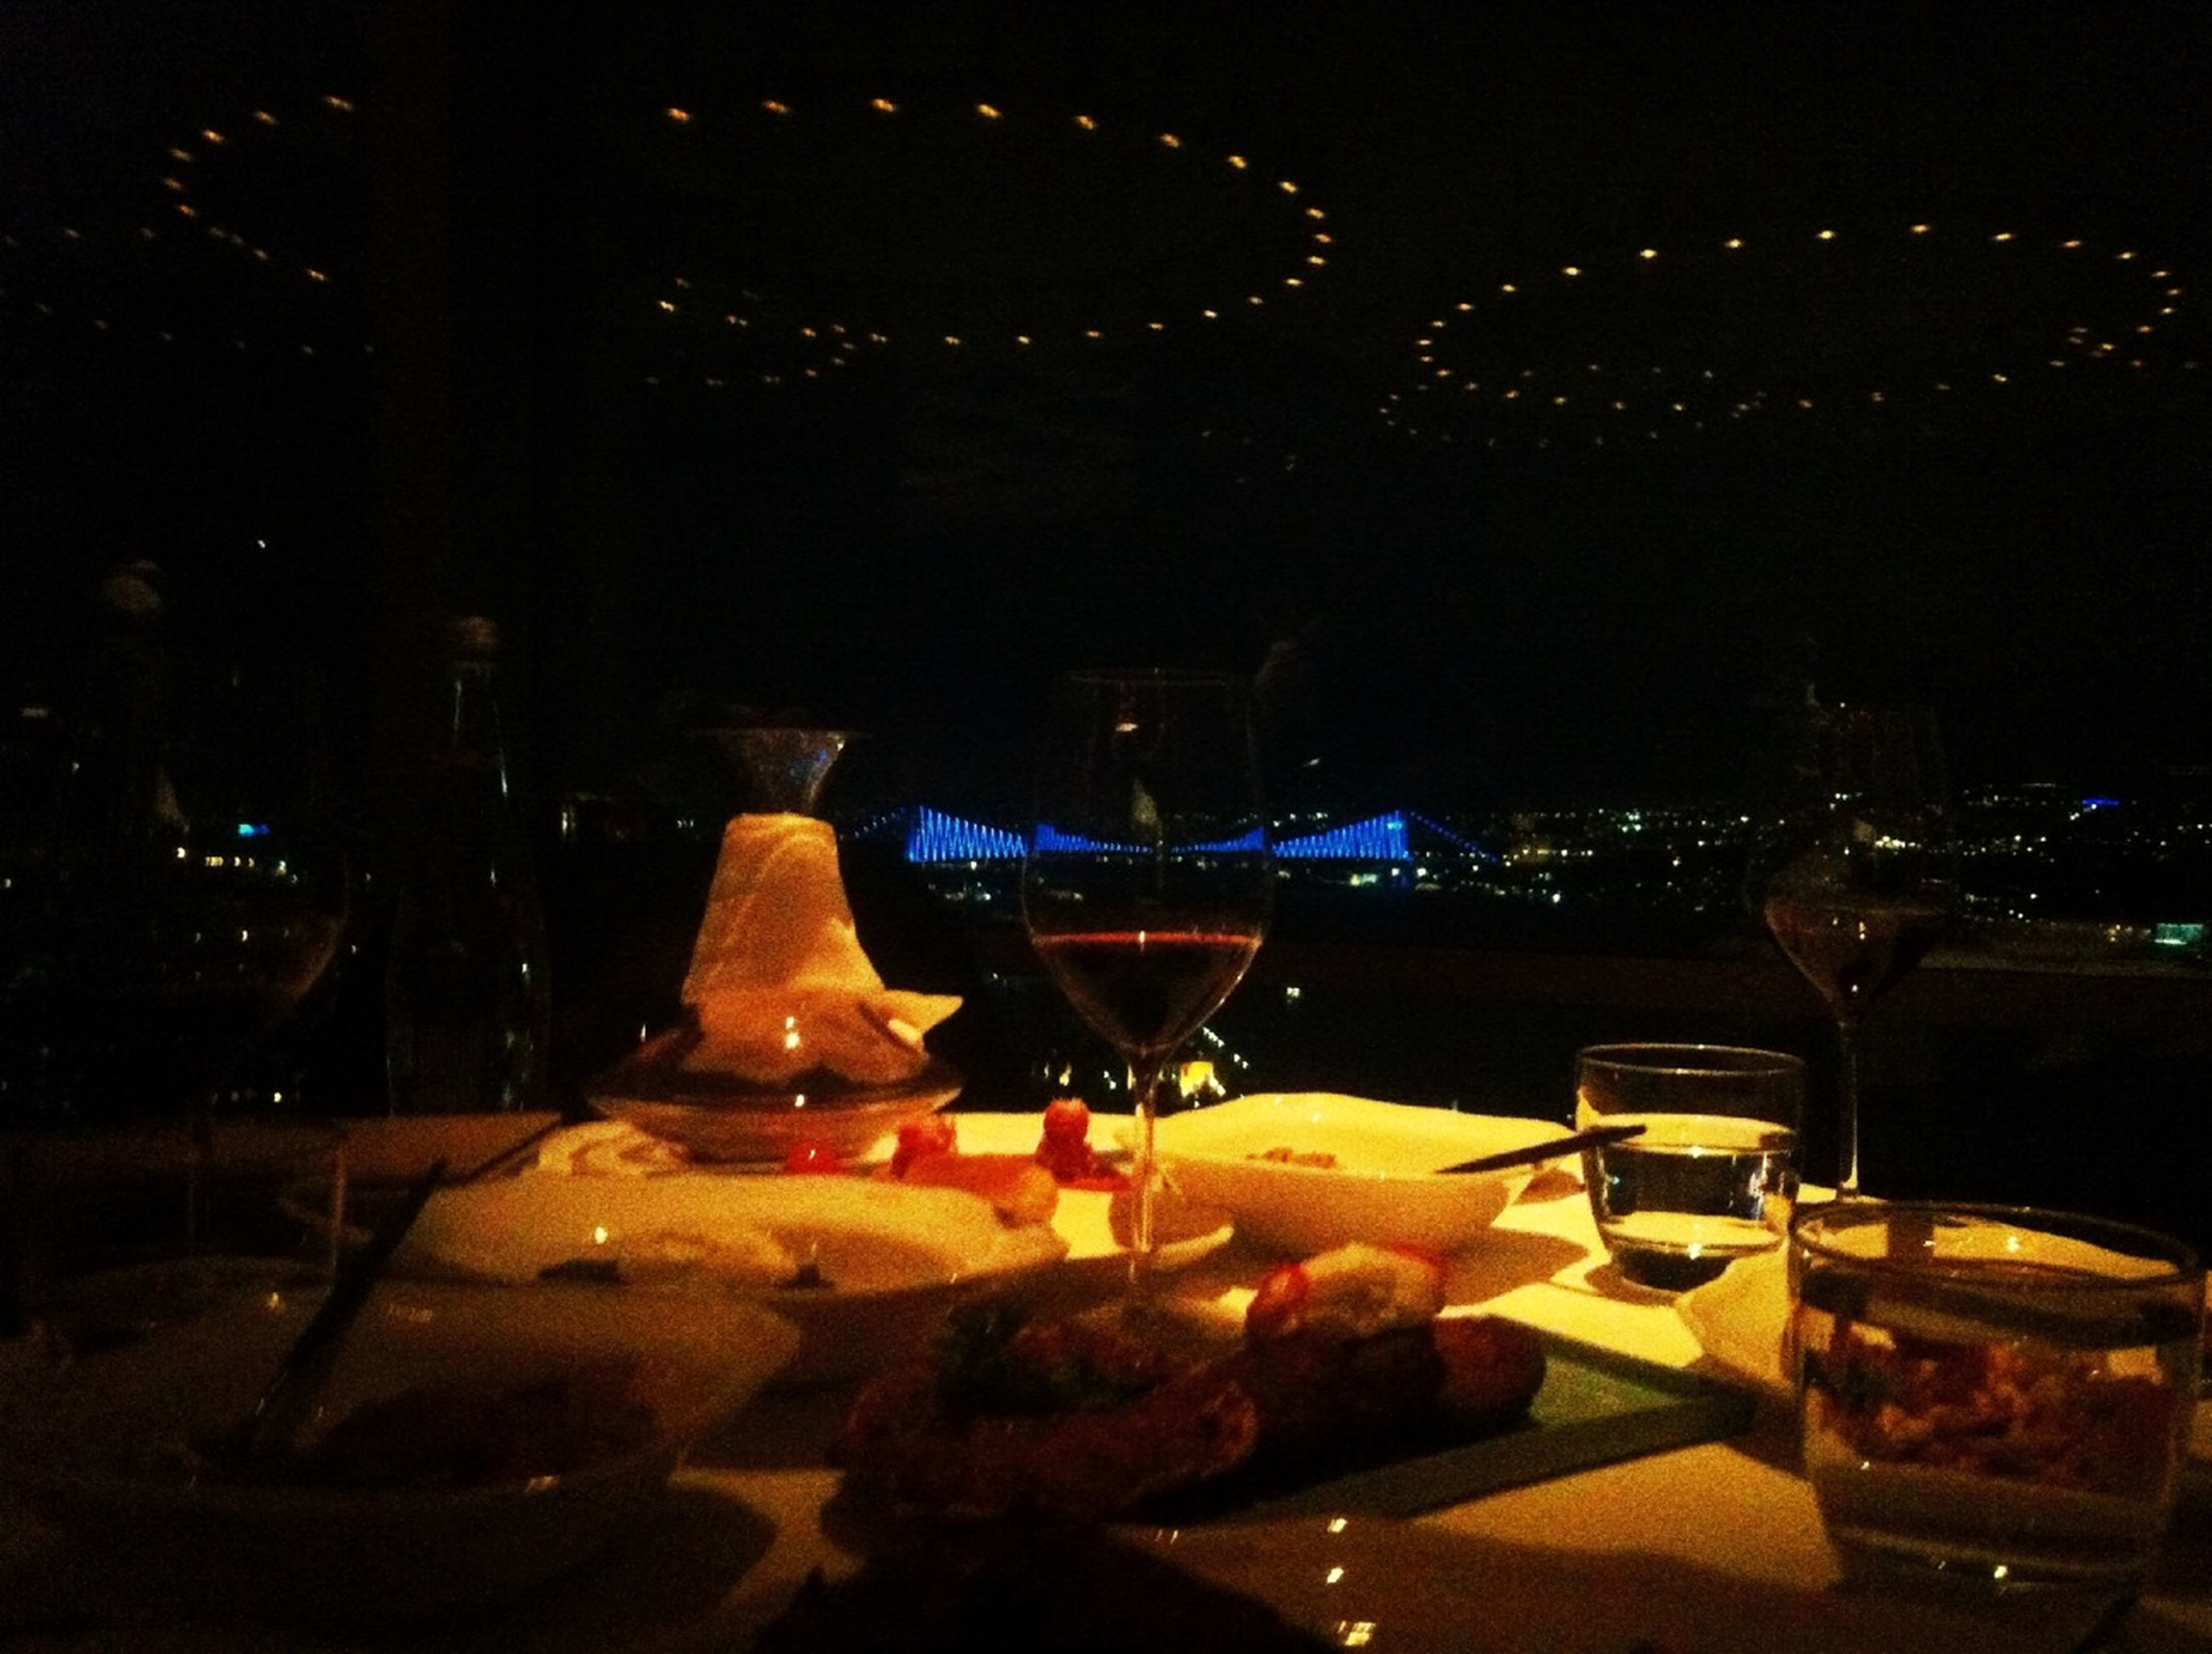 night, food and drink, illuminated, food, table, freshness, indoors, ready-to-eat, restaurant, unhealthy eating, still life, glowing, indulgence, dark, fire - natural phenomenon, burning, plate, close-up, no people, sweet food